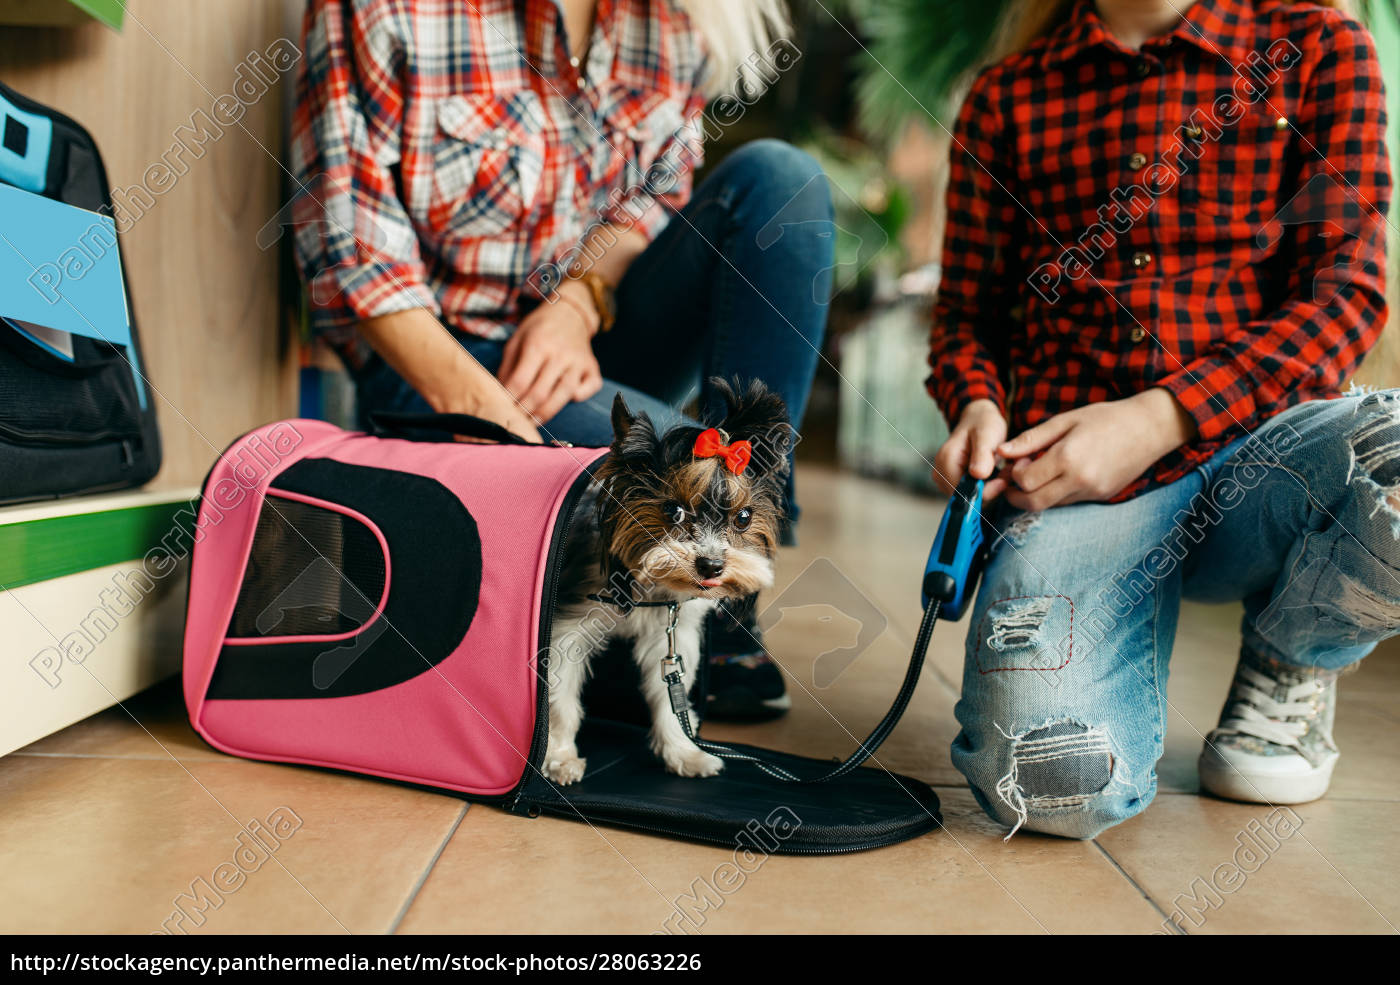 mother, with, girl, choosing, bag, for - 28063226